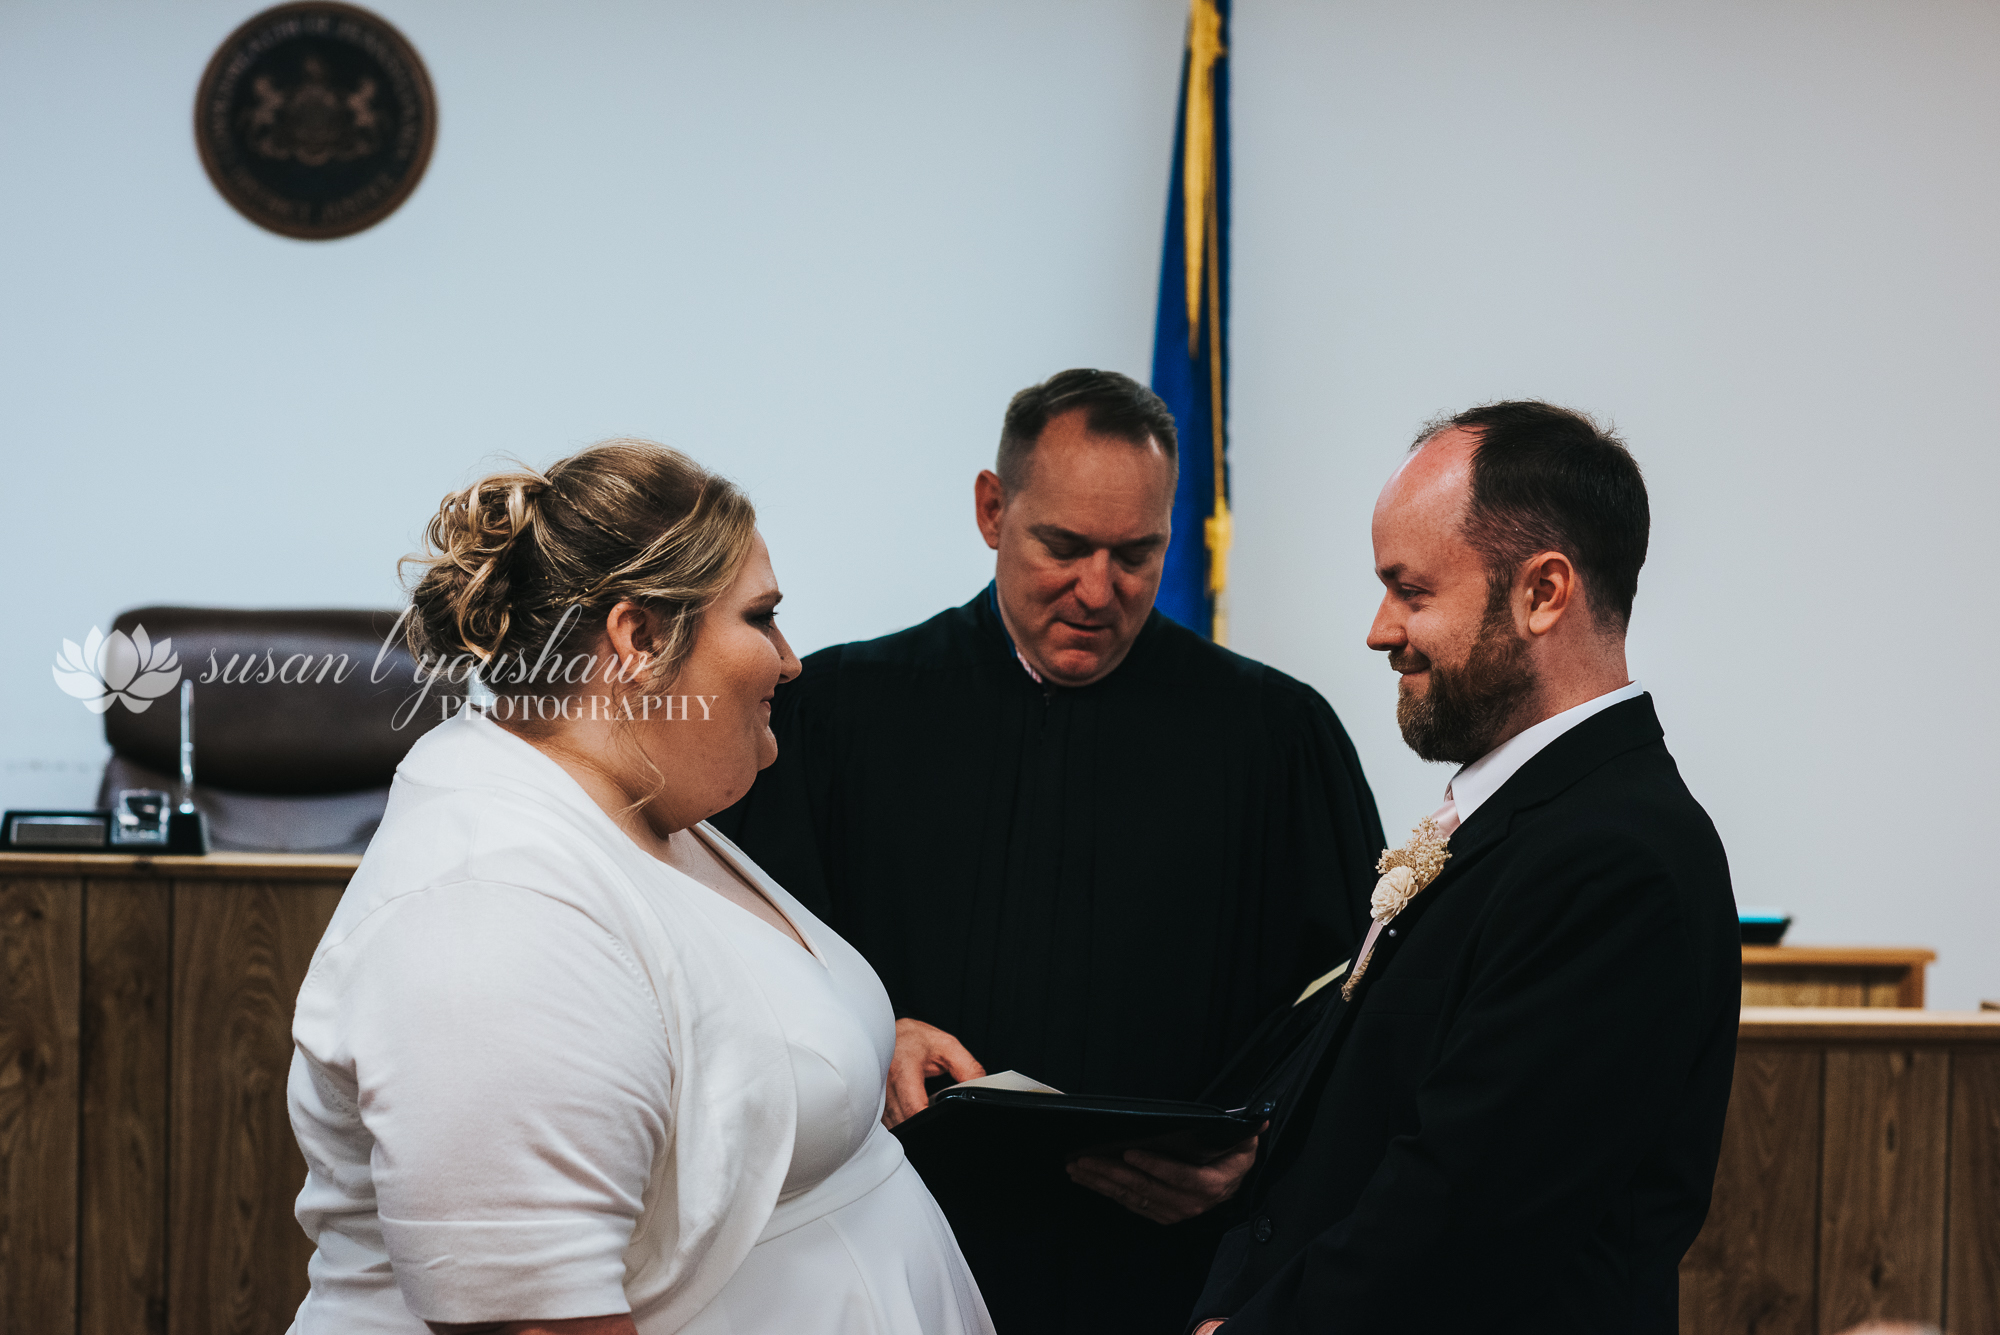 Bill and Sarah Wedding Photos 06-08-2019 SLY Photography -27.jpg